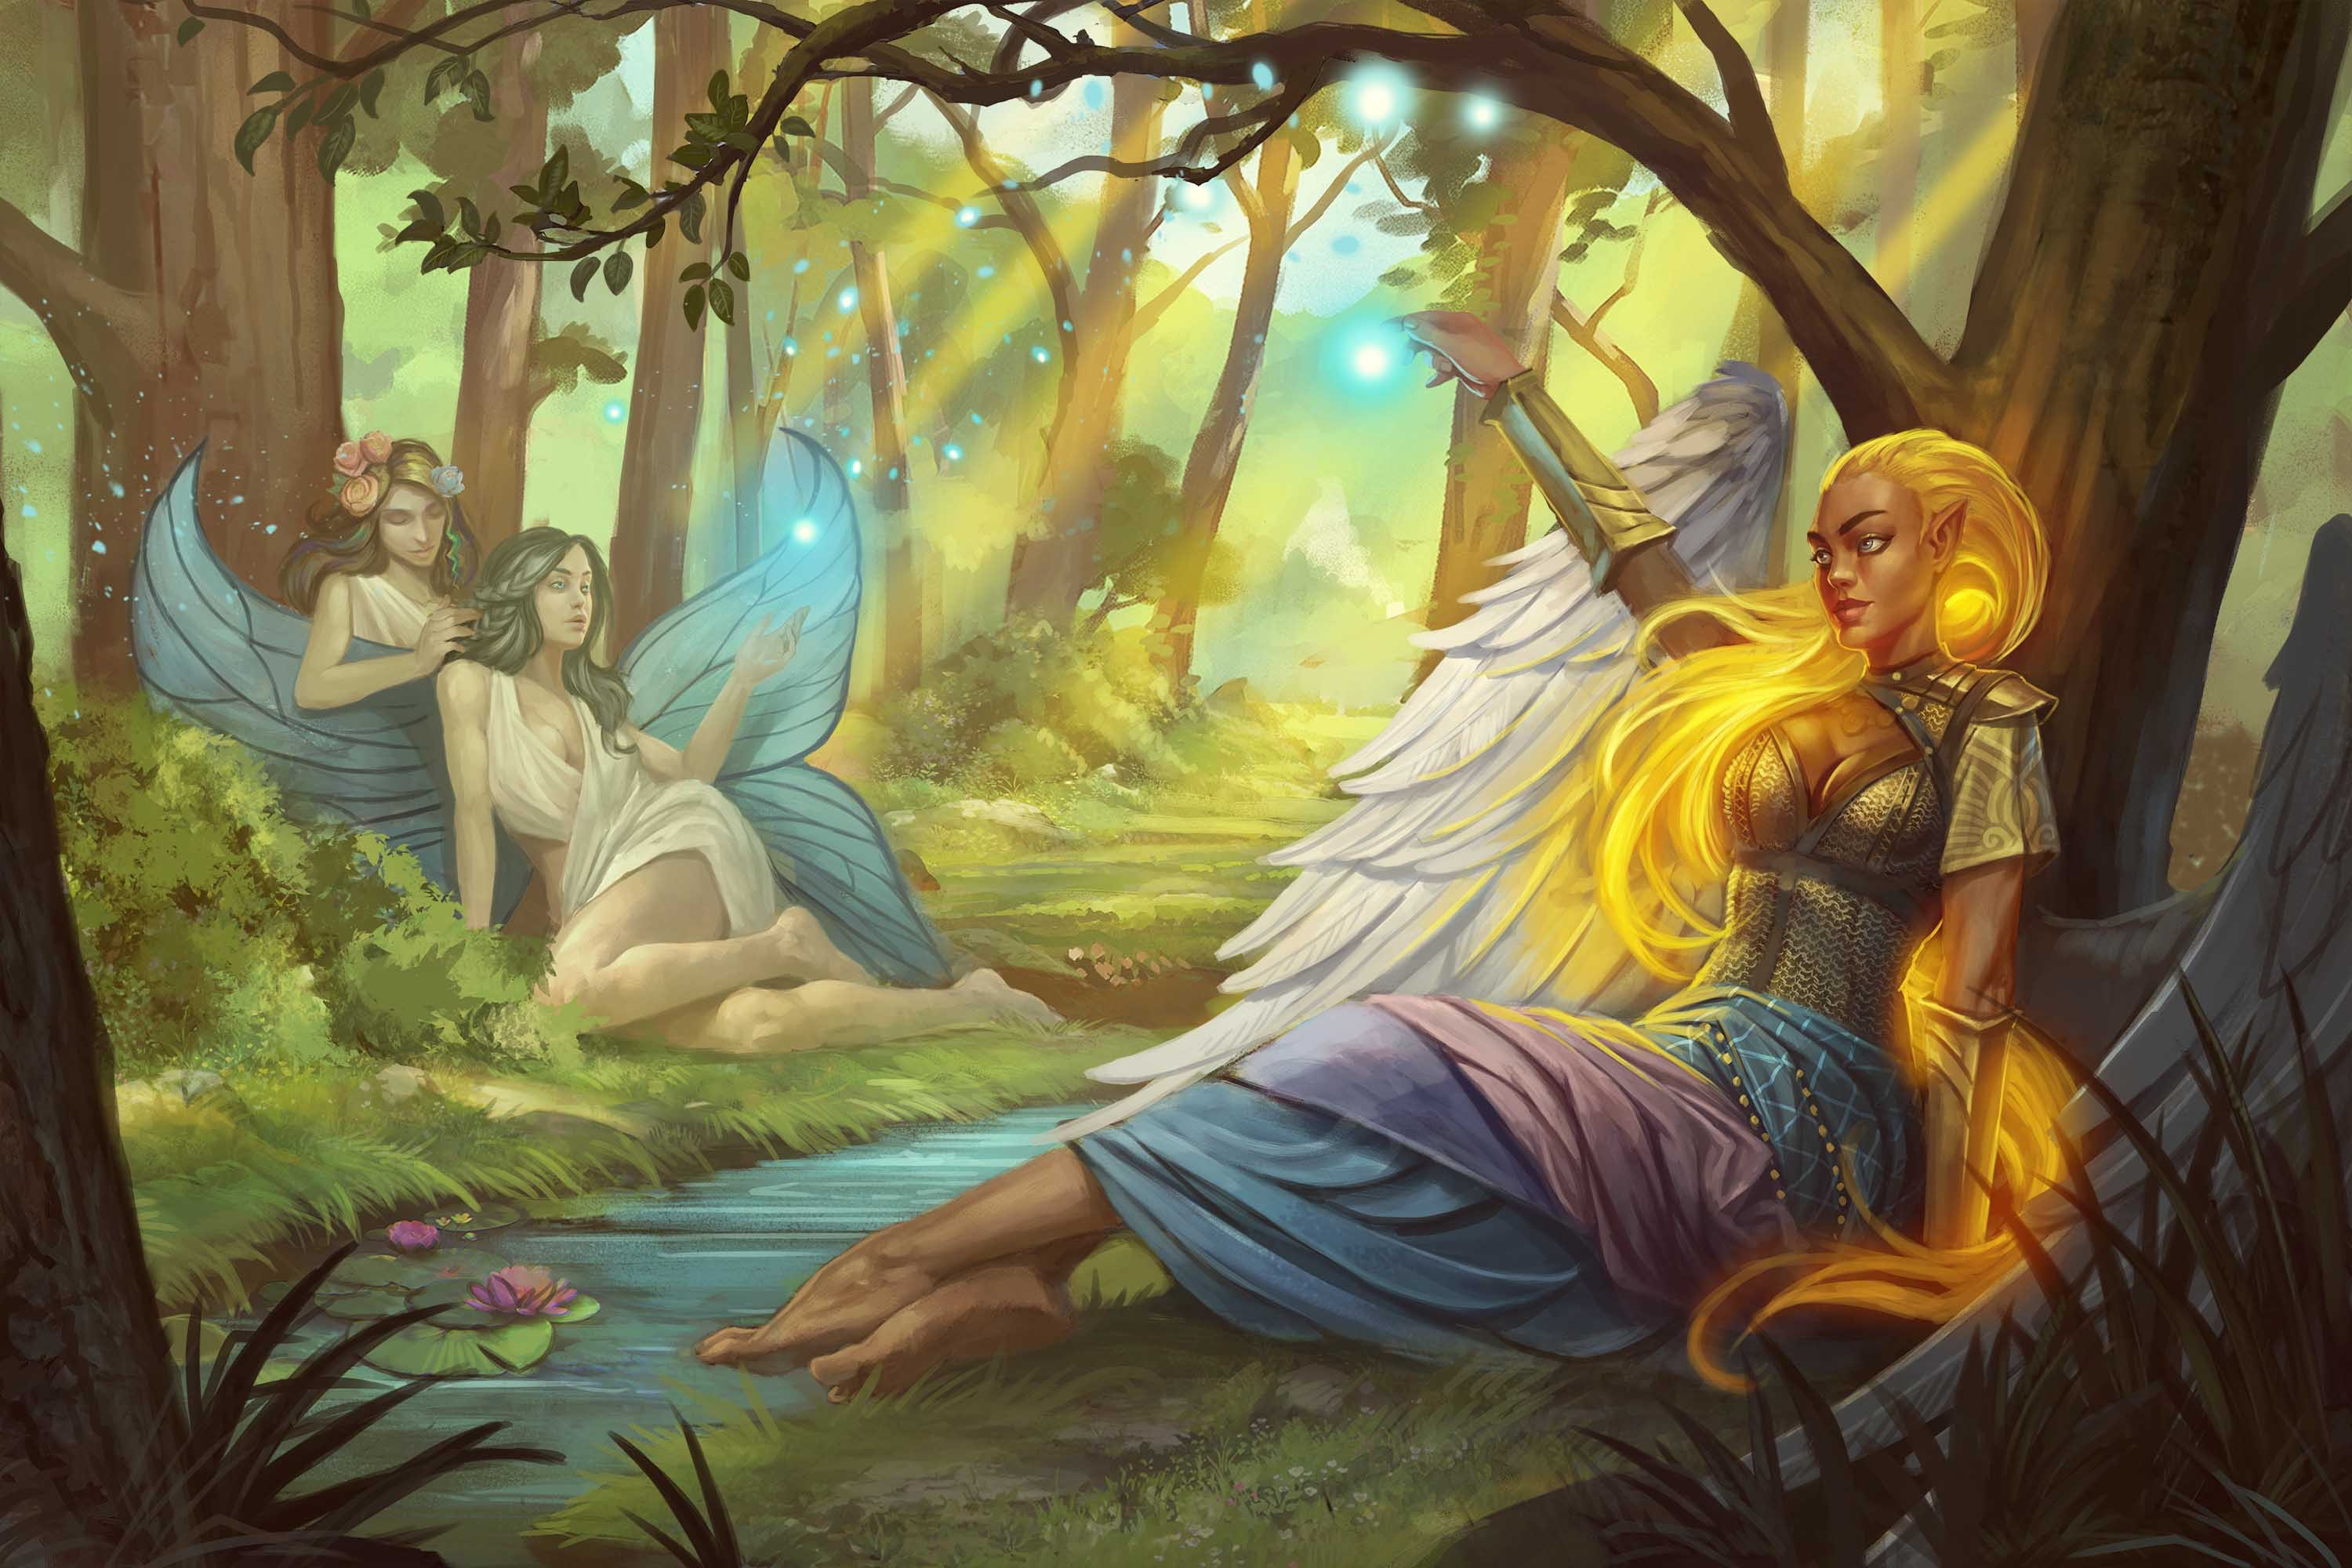 Desna, Shelyn, and Sarenrae rest in a beautiful forest clearing.